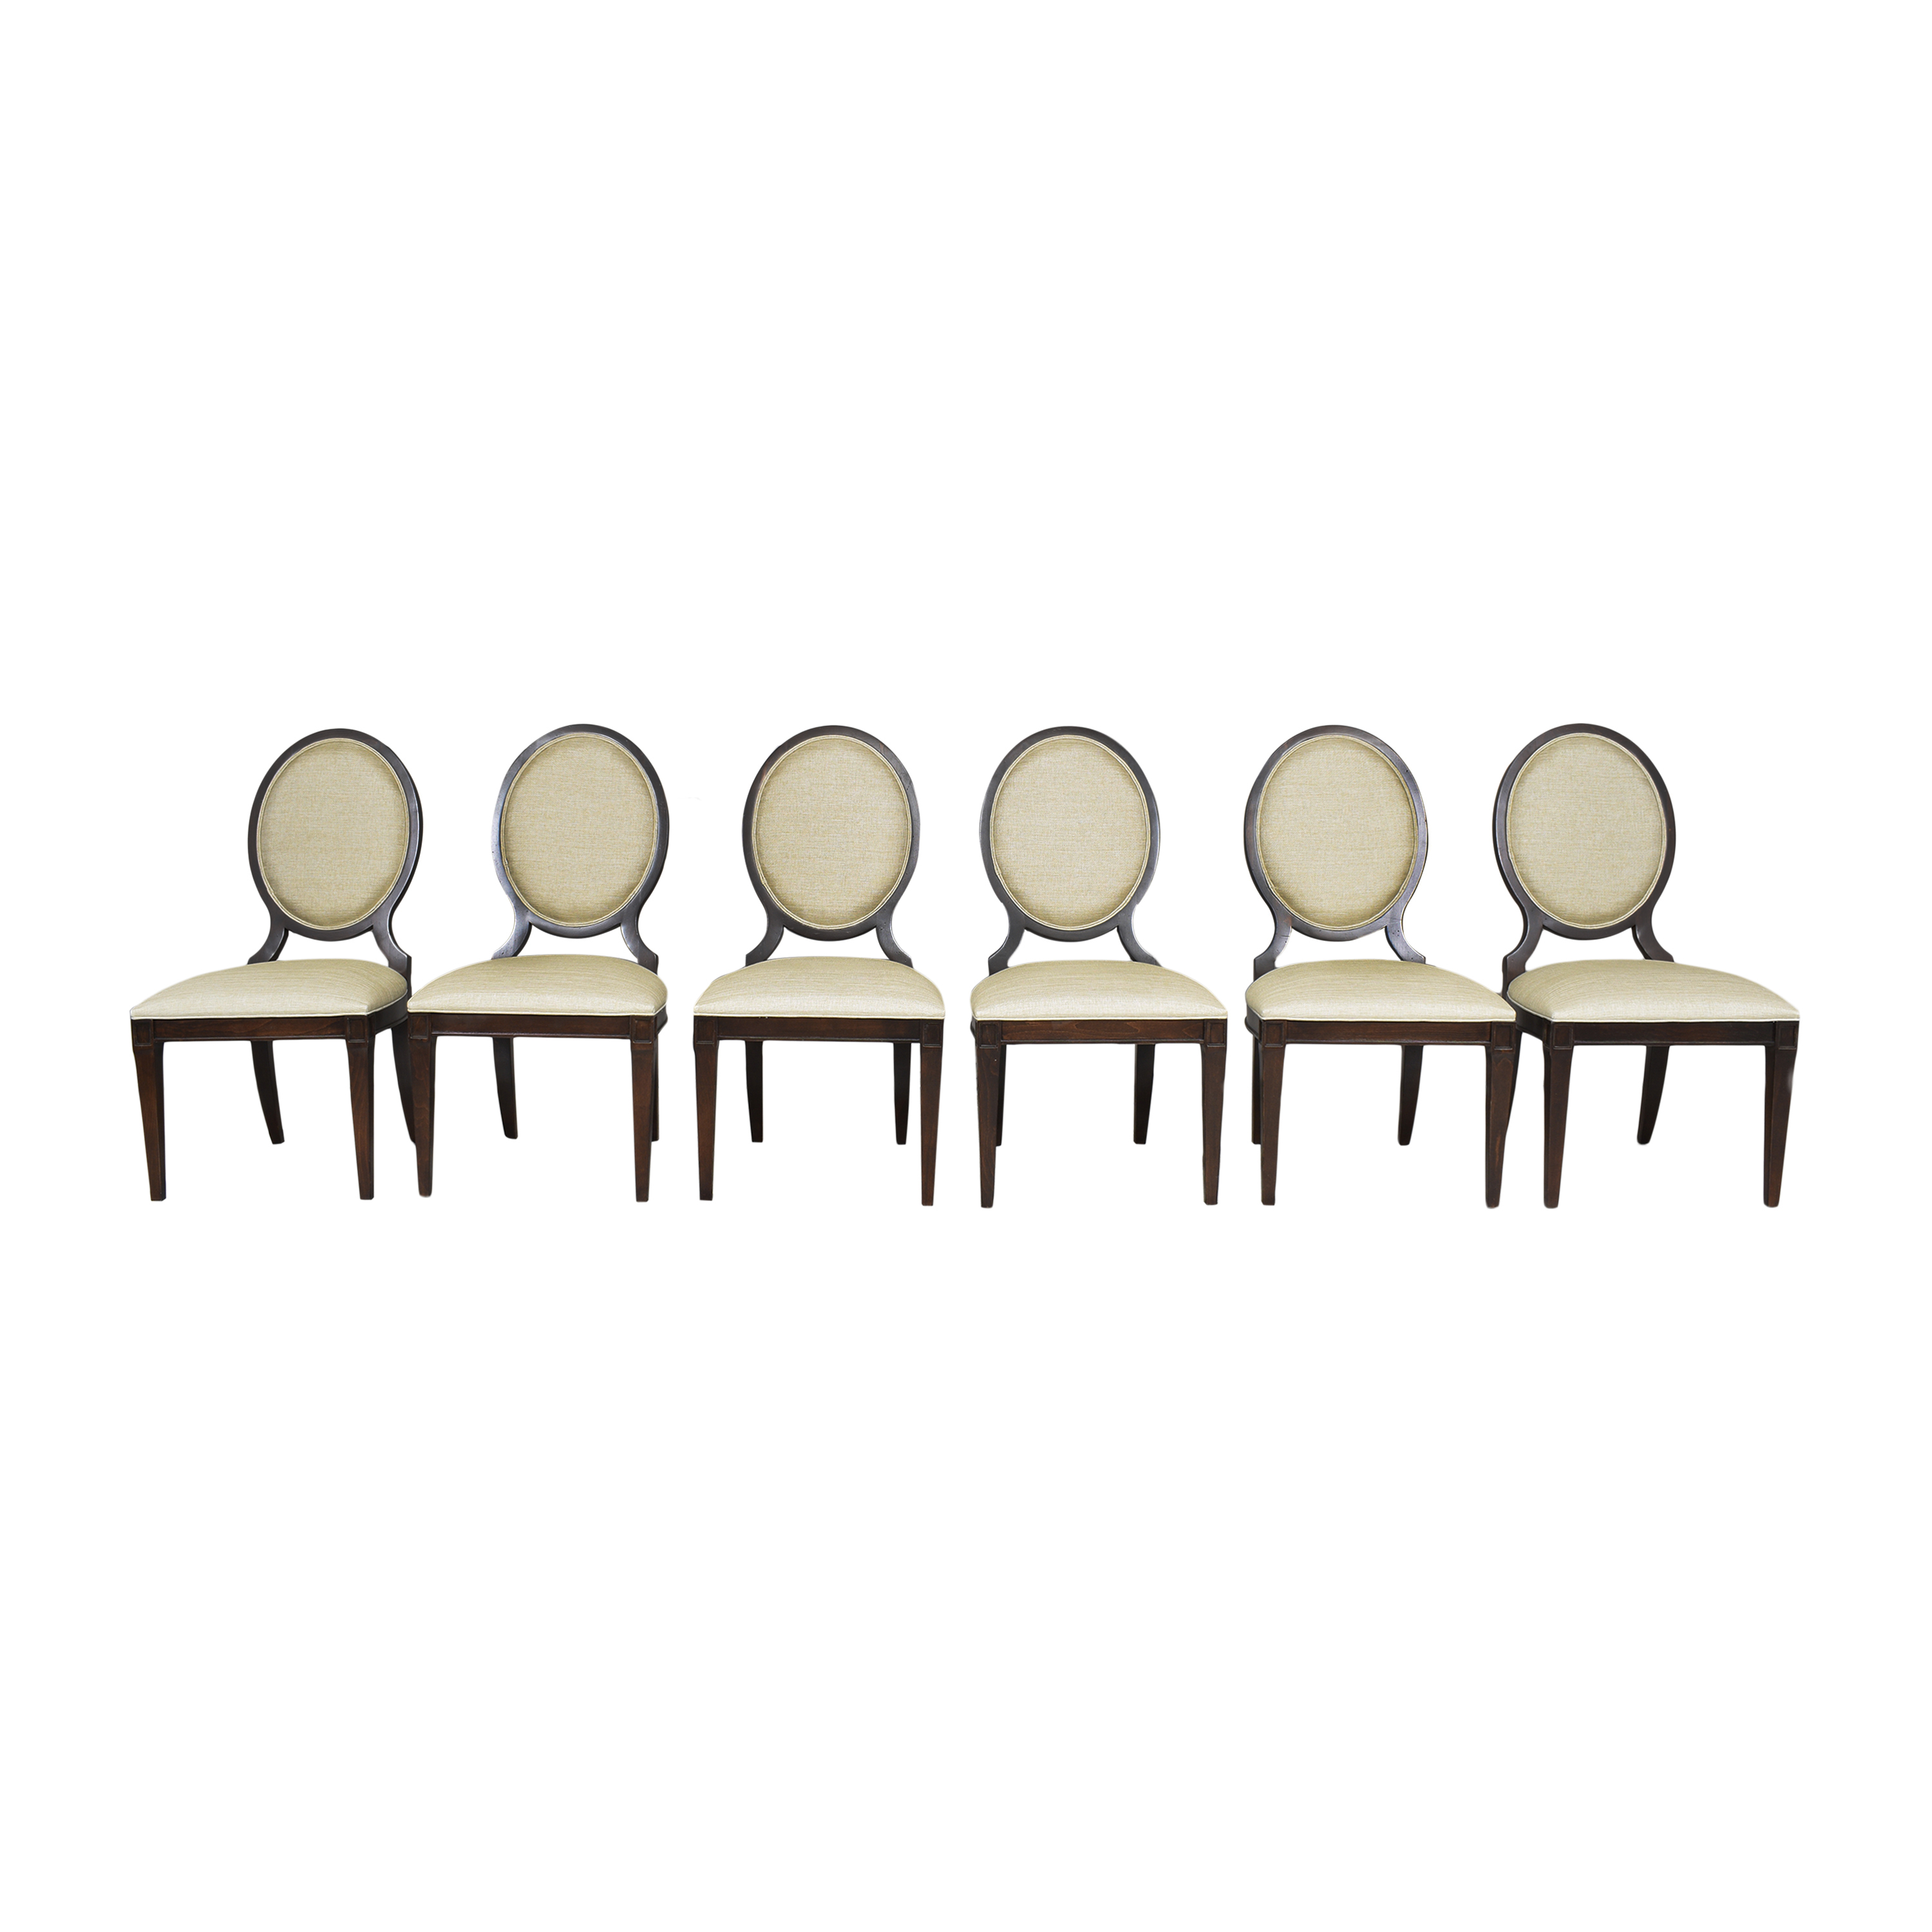 Ethan Allen Ethan Allen Lindsay Side Dining Chairs tan & brown